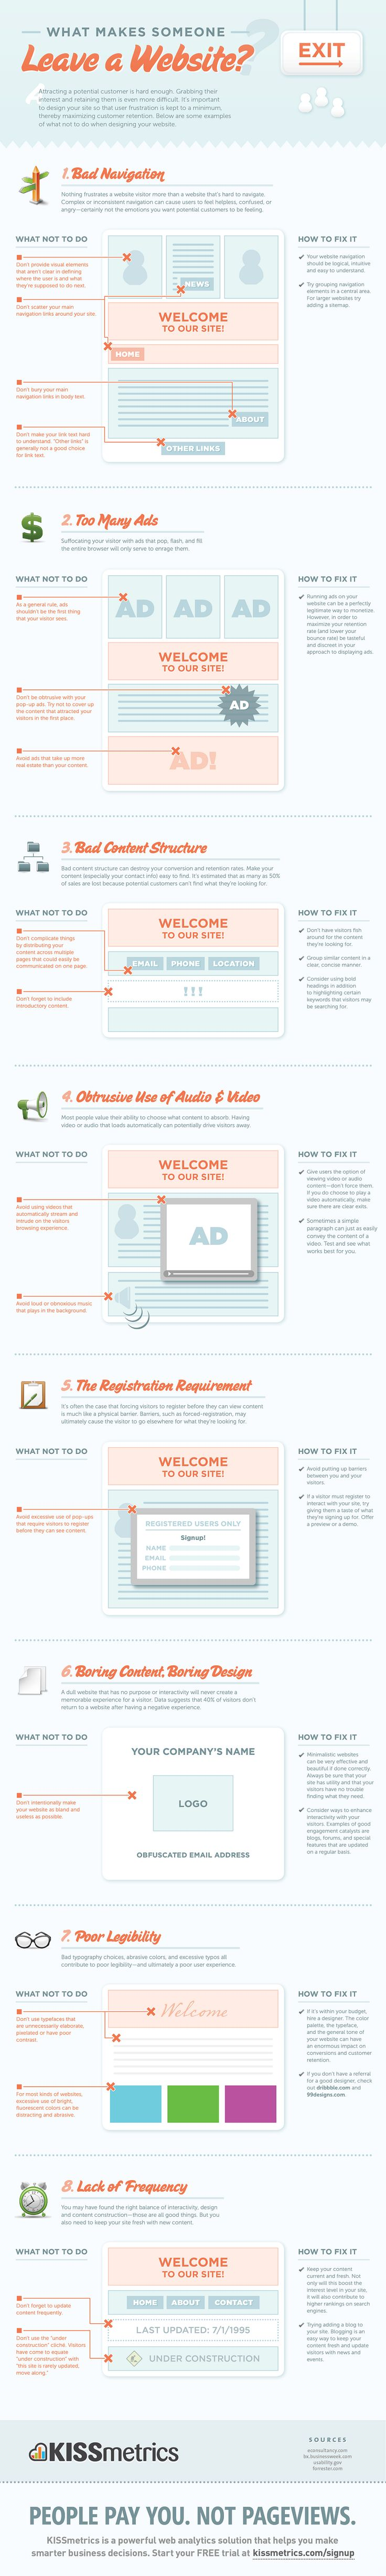 What Makes Someone Leave A Website? [INFOGRAPHIC]